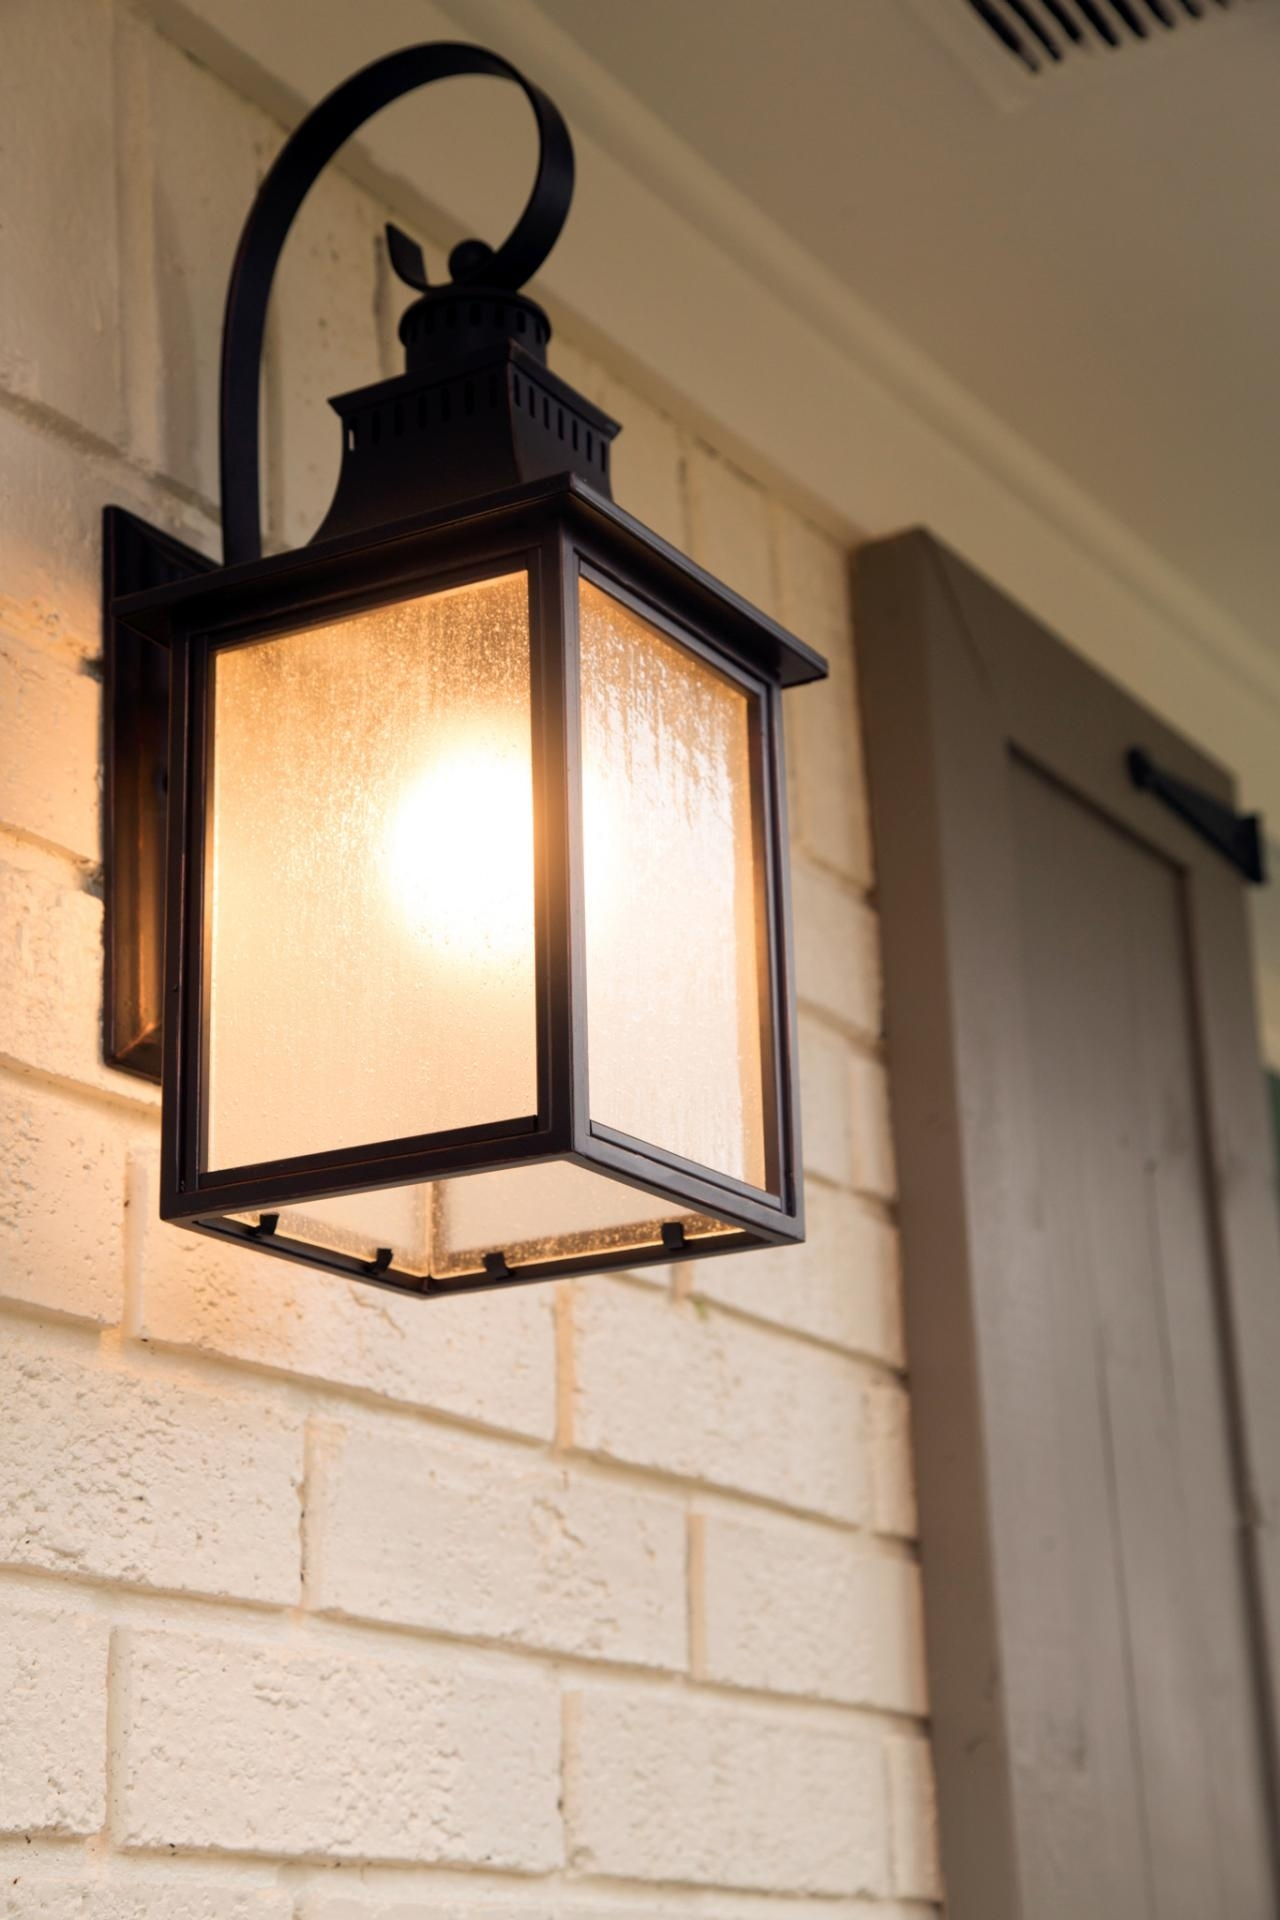 Outdoor Lighting For Front Door | Sevenstonesinc regarding Outdoor Lanterns For Front Door (Image 18 of 20)